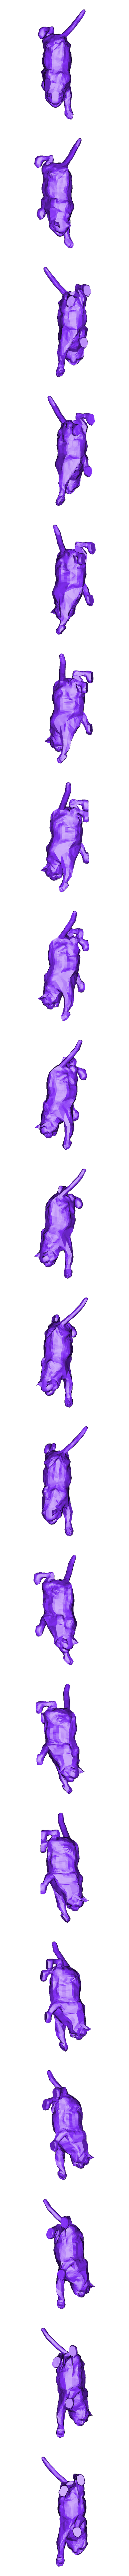 cat left paw.stl Download free STL file Cat Playing • 3D printer object, hertelandrey